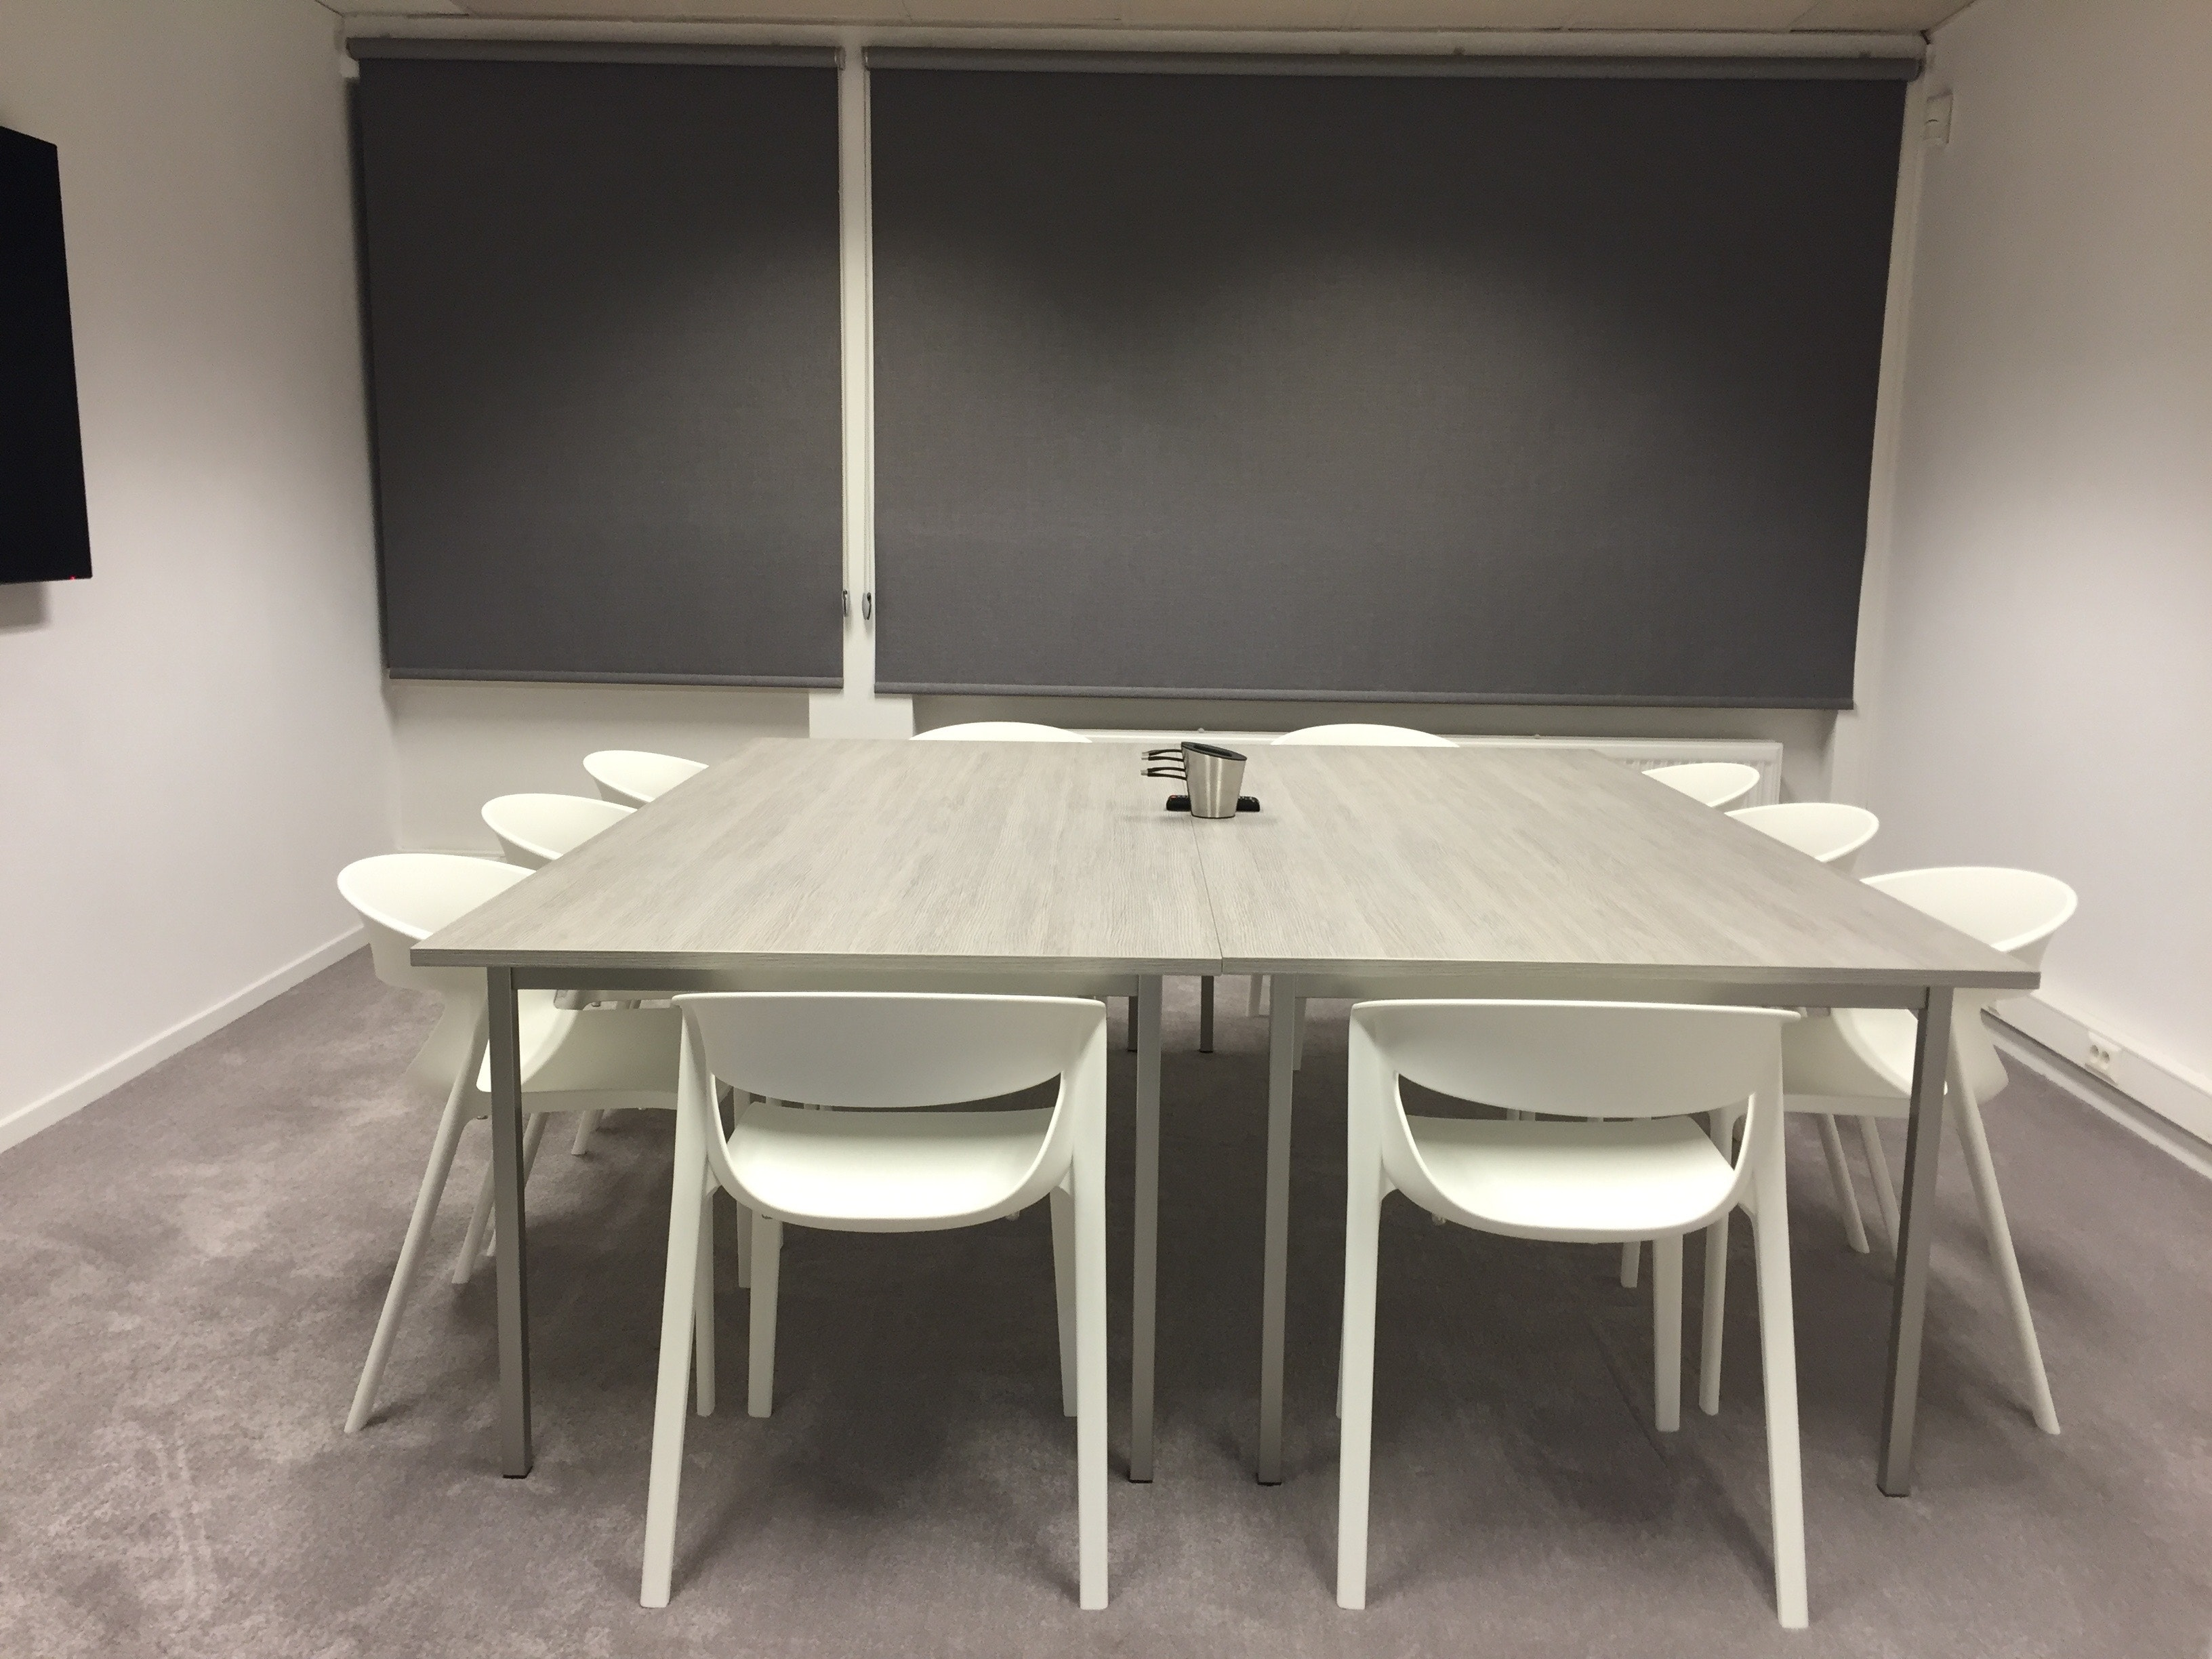 rectangular white table with rolling chairs inside room  u00b7 free stock photo